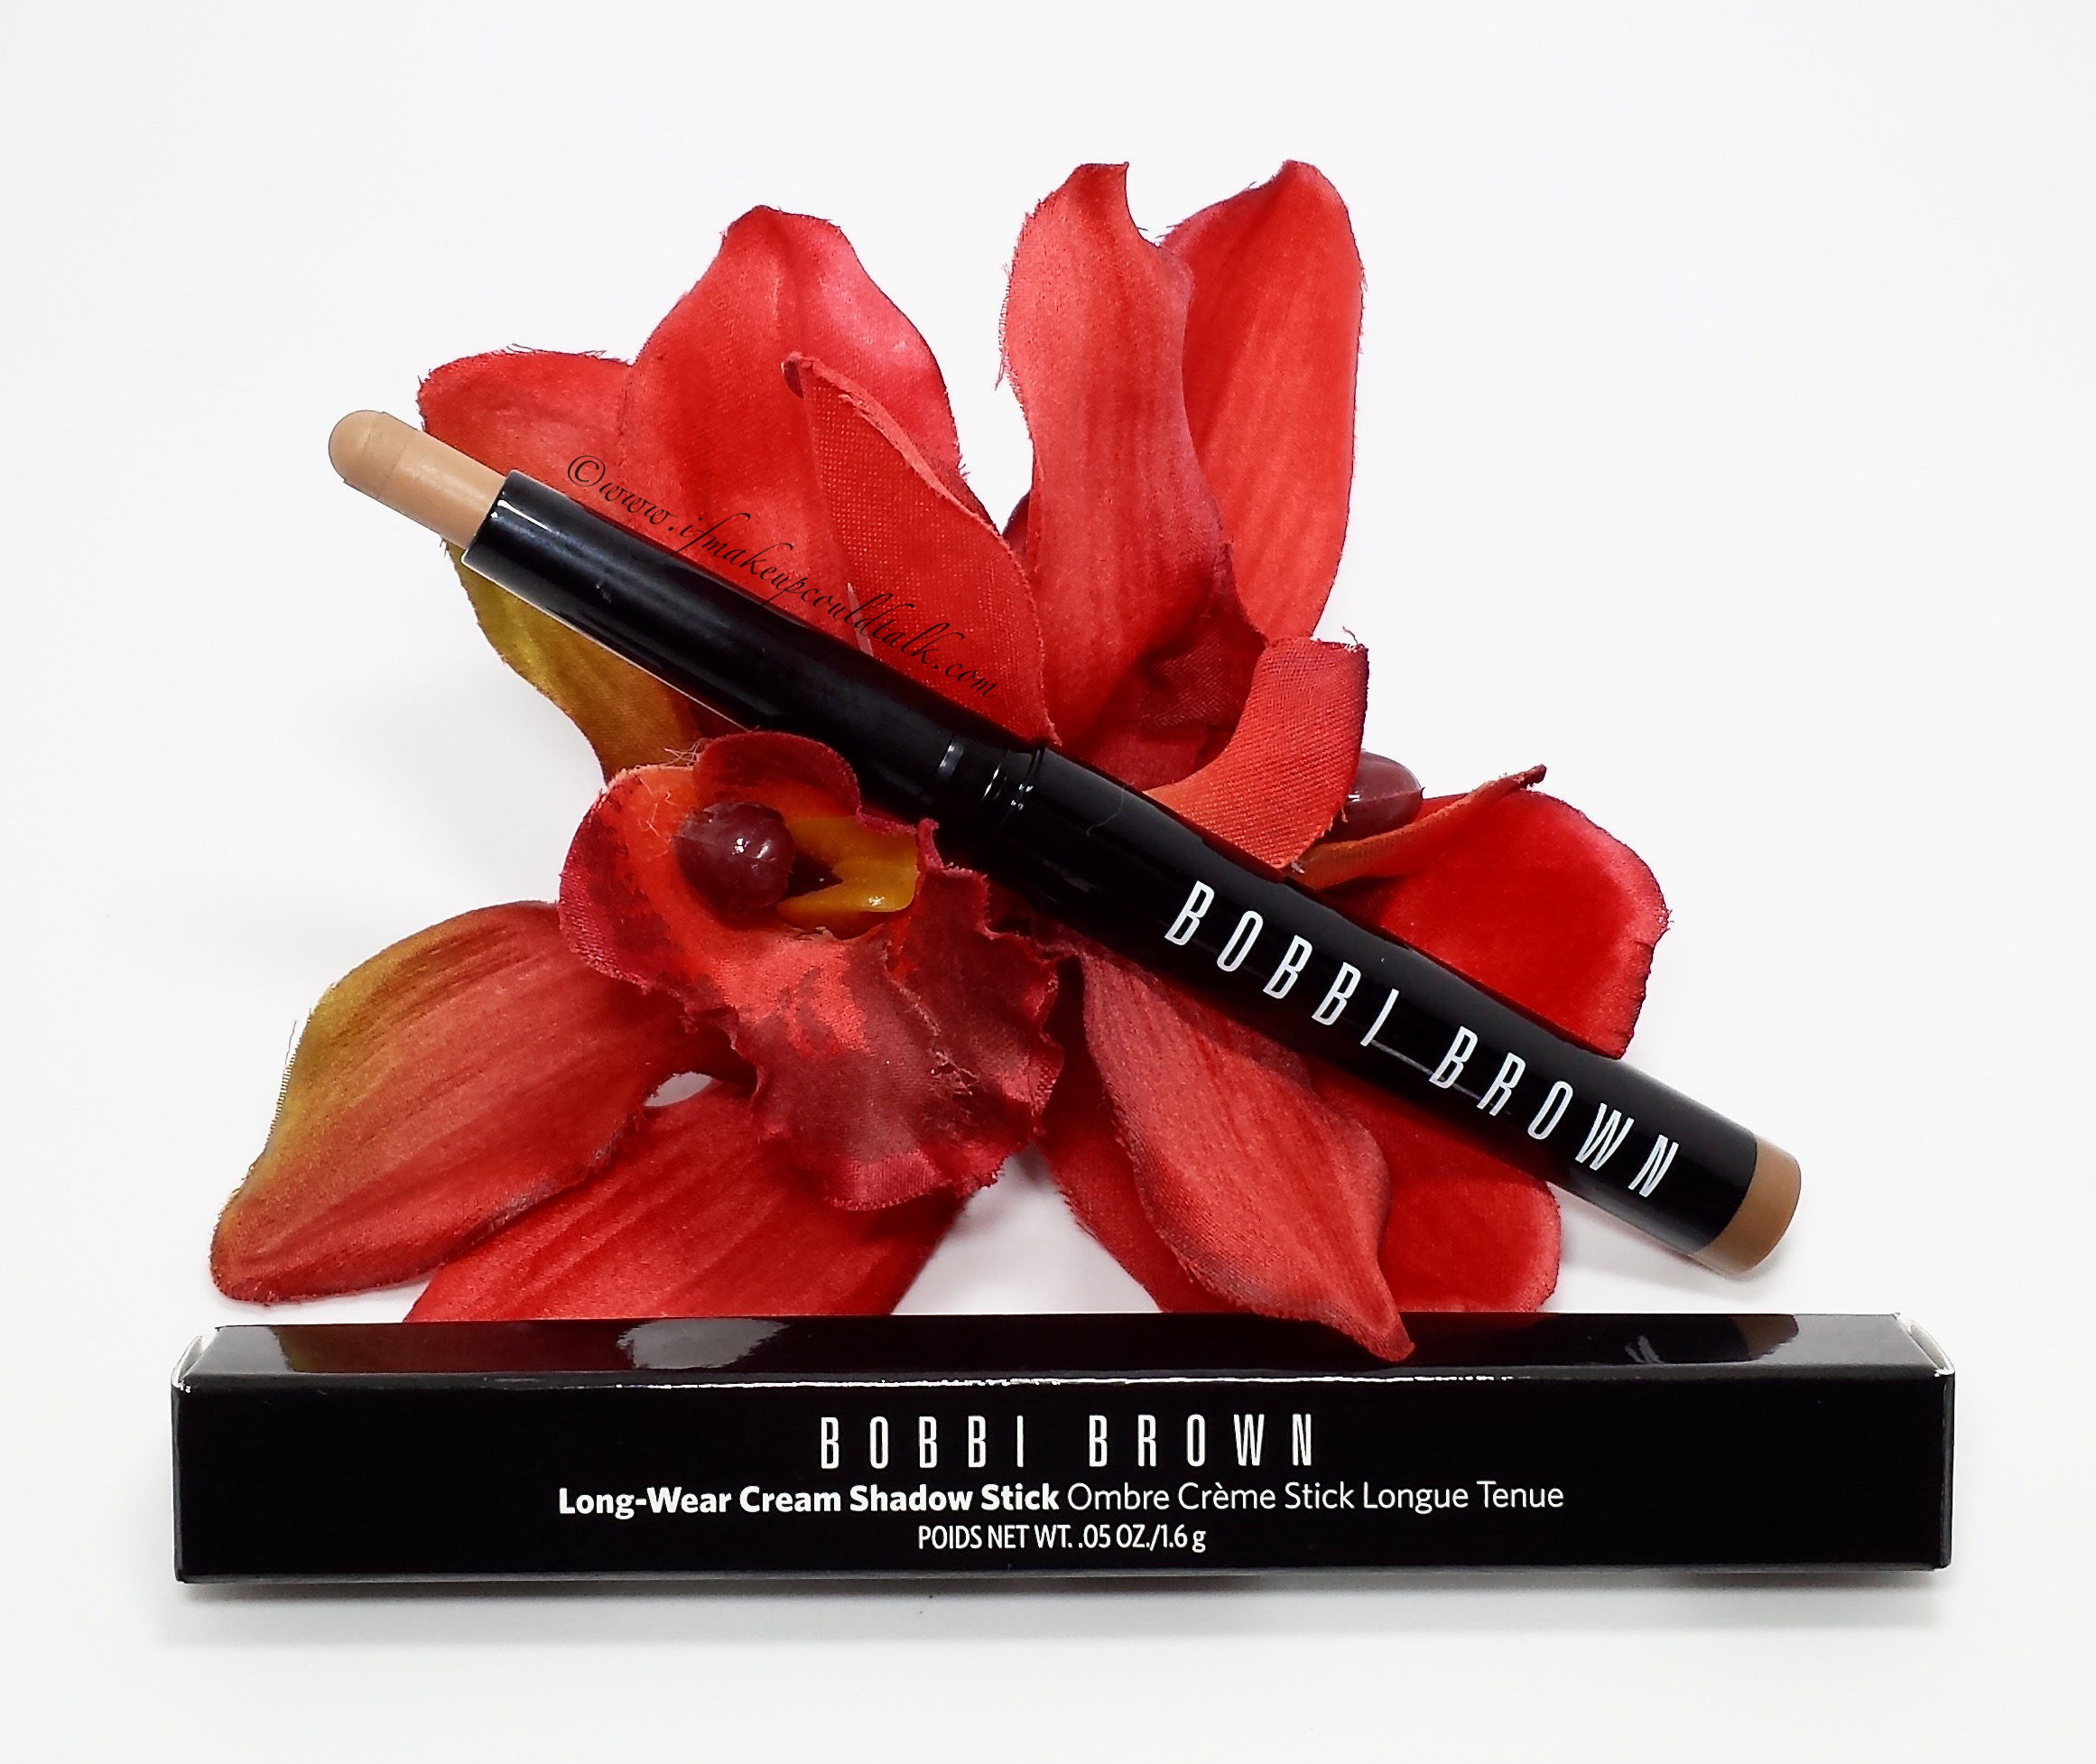 Bobbi Brown Taupe Long-Wear Cream Shadow Stick review and photos.